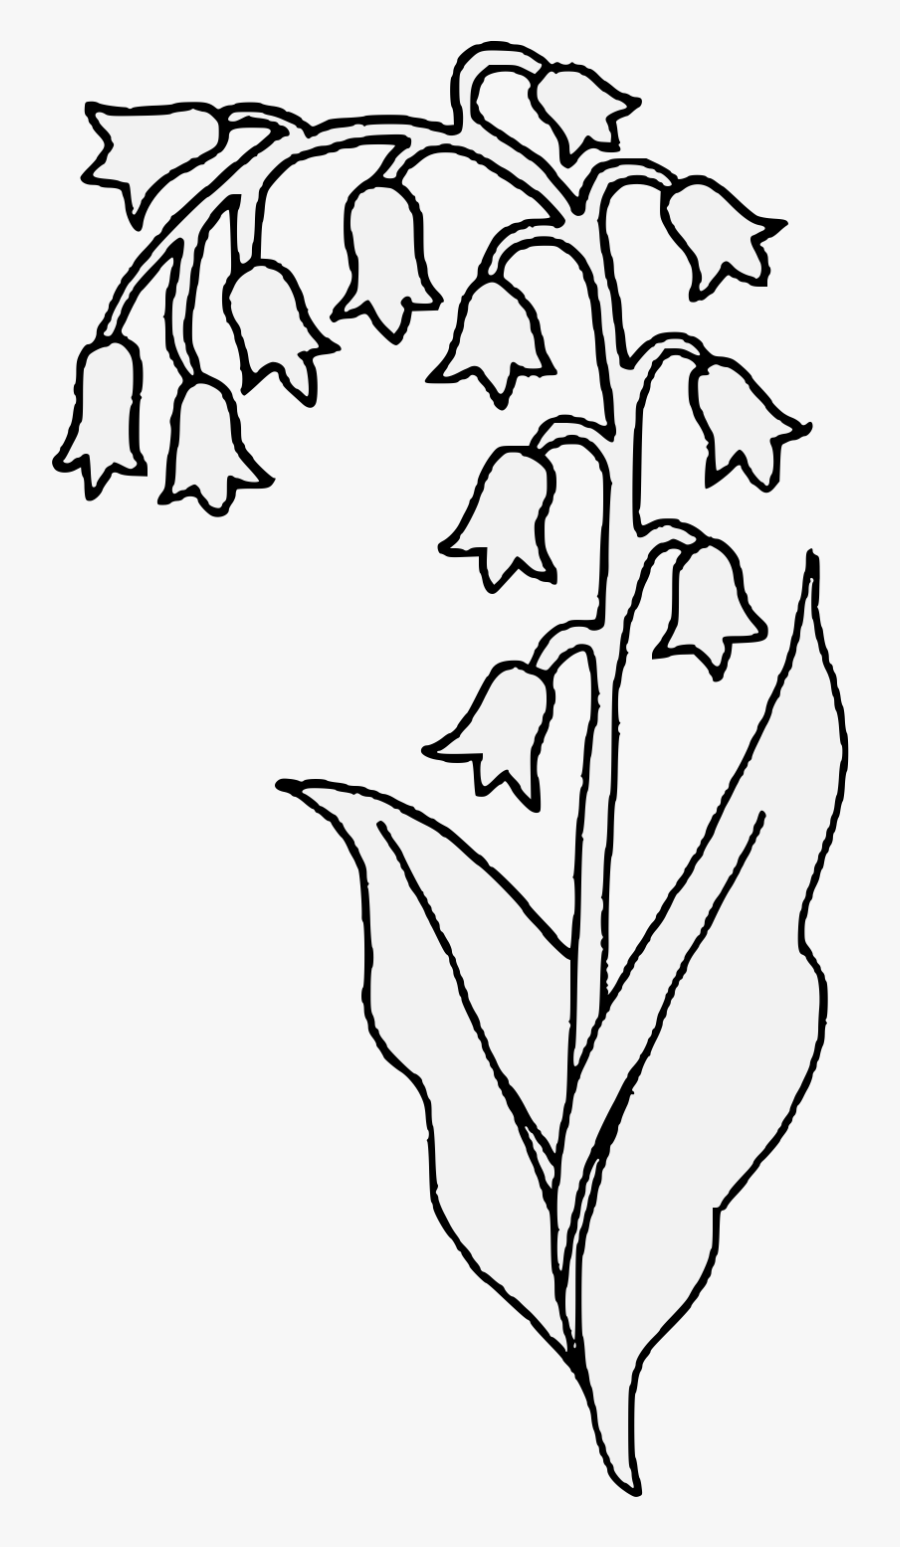 Lily Pad Flower Clipart Black And White - Black And White Lily Clipart Flowers, Transparent Clipart